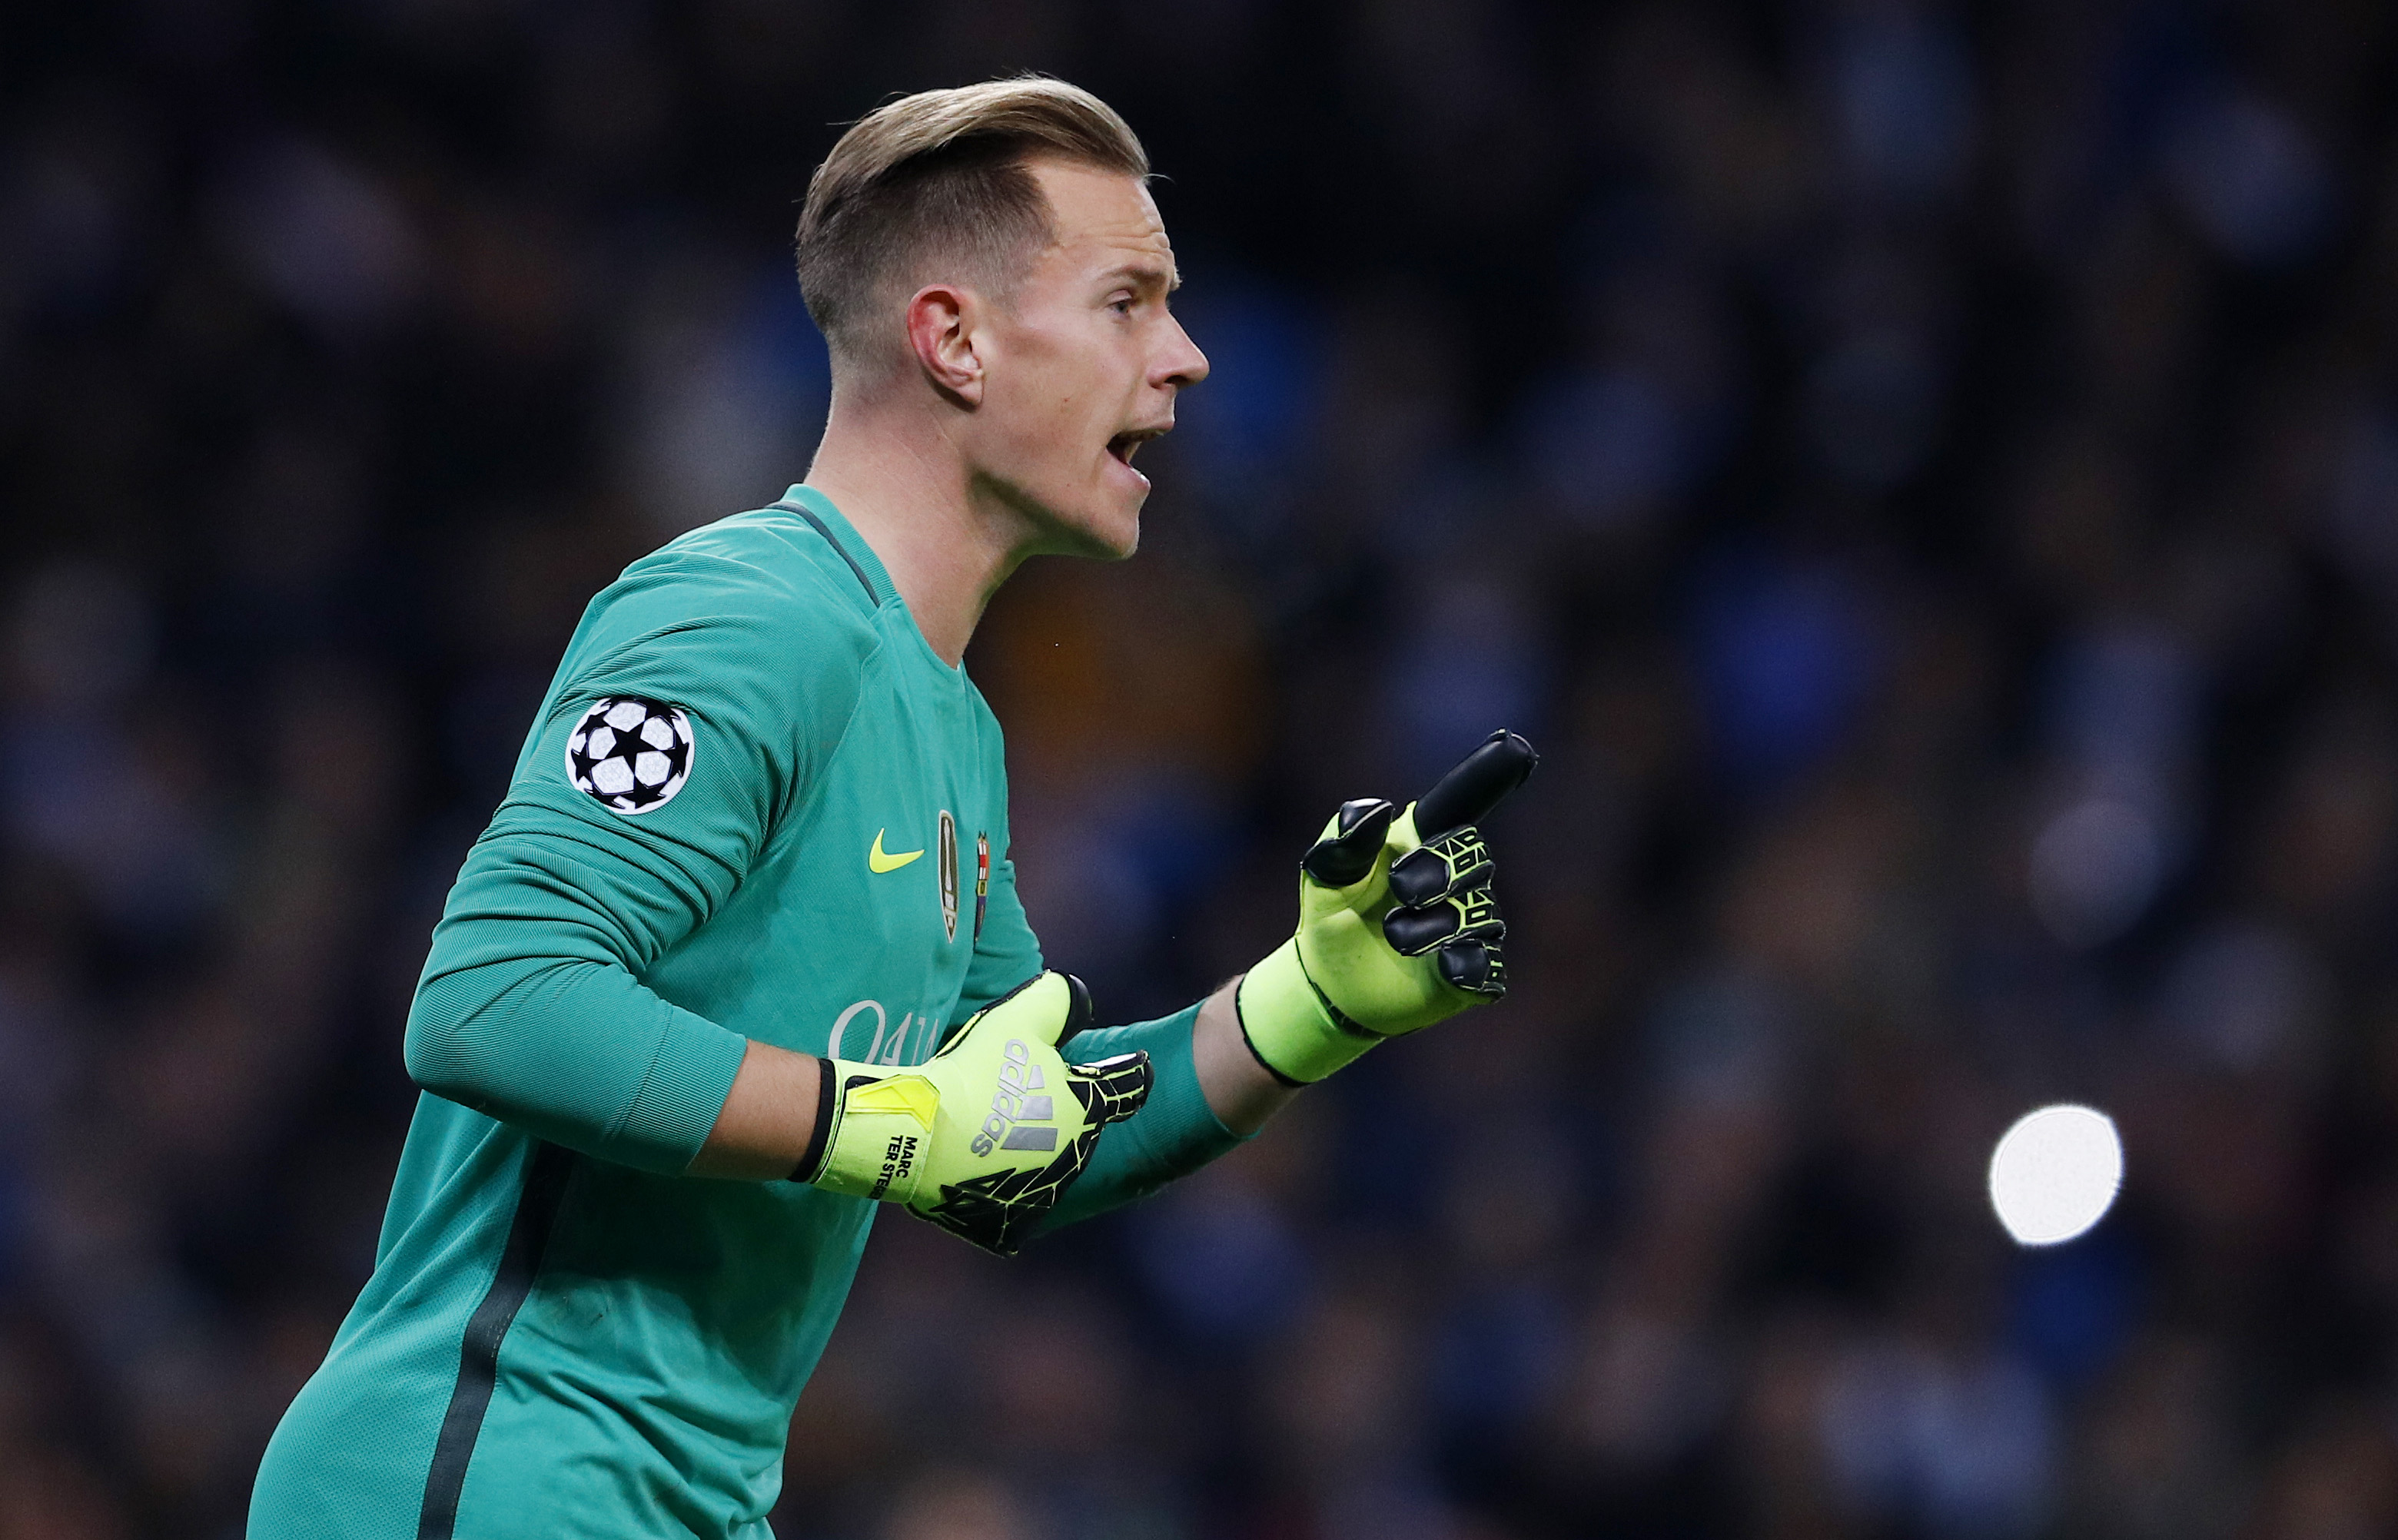 Britain Football Soccer - Manchester City v FC Barcelona - UEFA Champions League Group Stage - Group C - Etihad Stadium, Manchester, England - 1/11/16 Barcelona's Marc-Andre ter Stegen  Reuters / Phil Noble Livepic EDITORIAL USE ONLY.